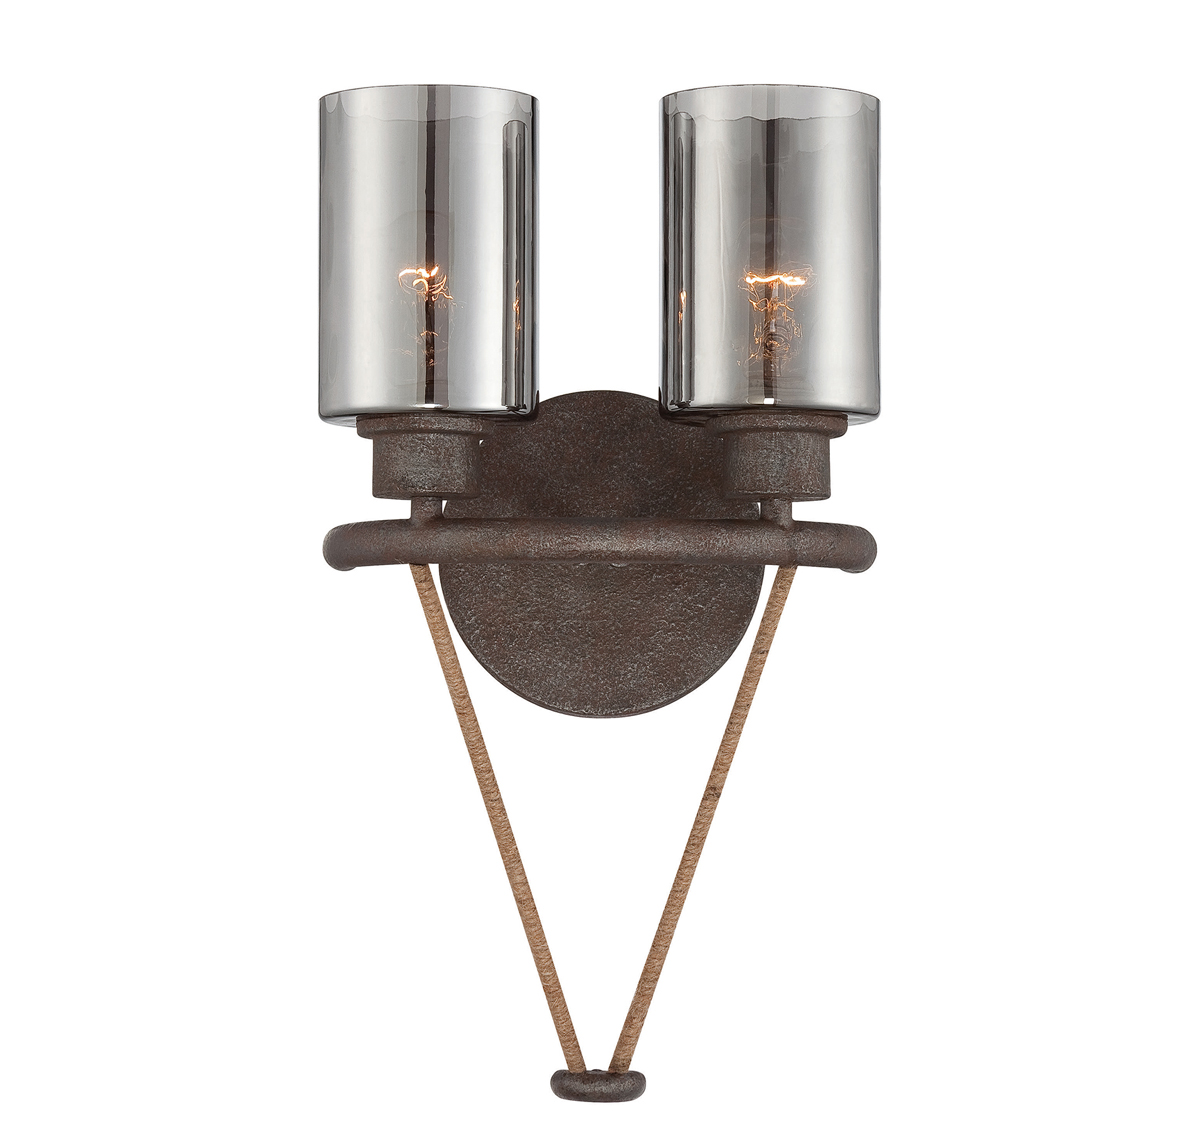 Savoy House Wall Sconces Lighting Fixtures Lights and Home